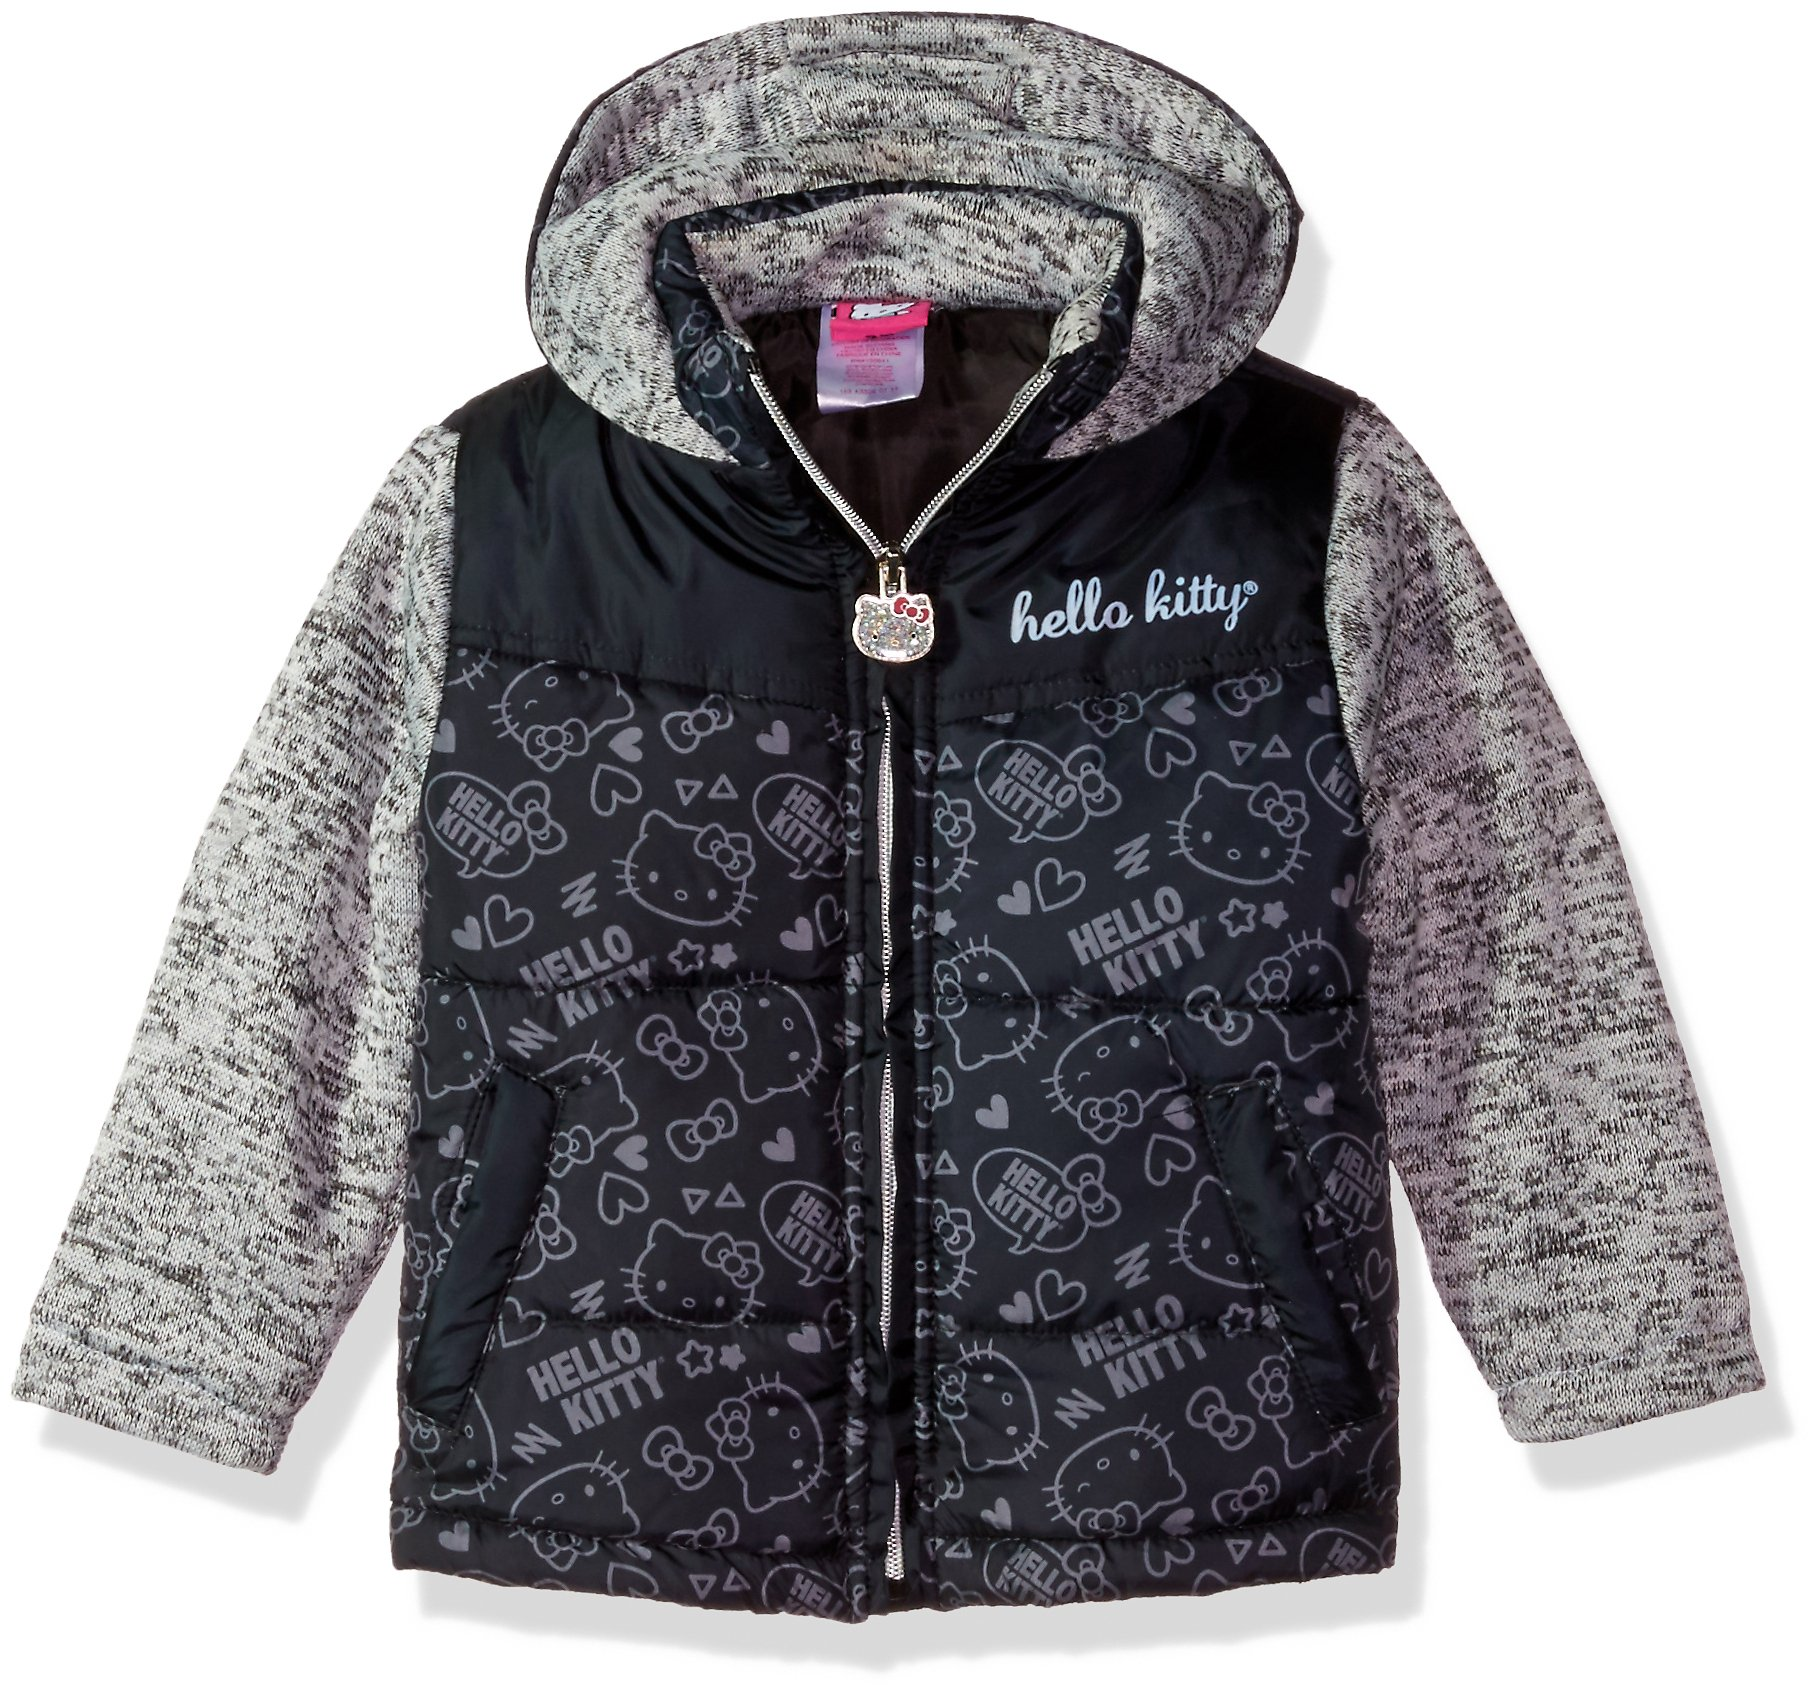 Hello Kitty Toddler Girls' Printed Puffer Jacket with Sweater Sleeves, Black, 4T